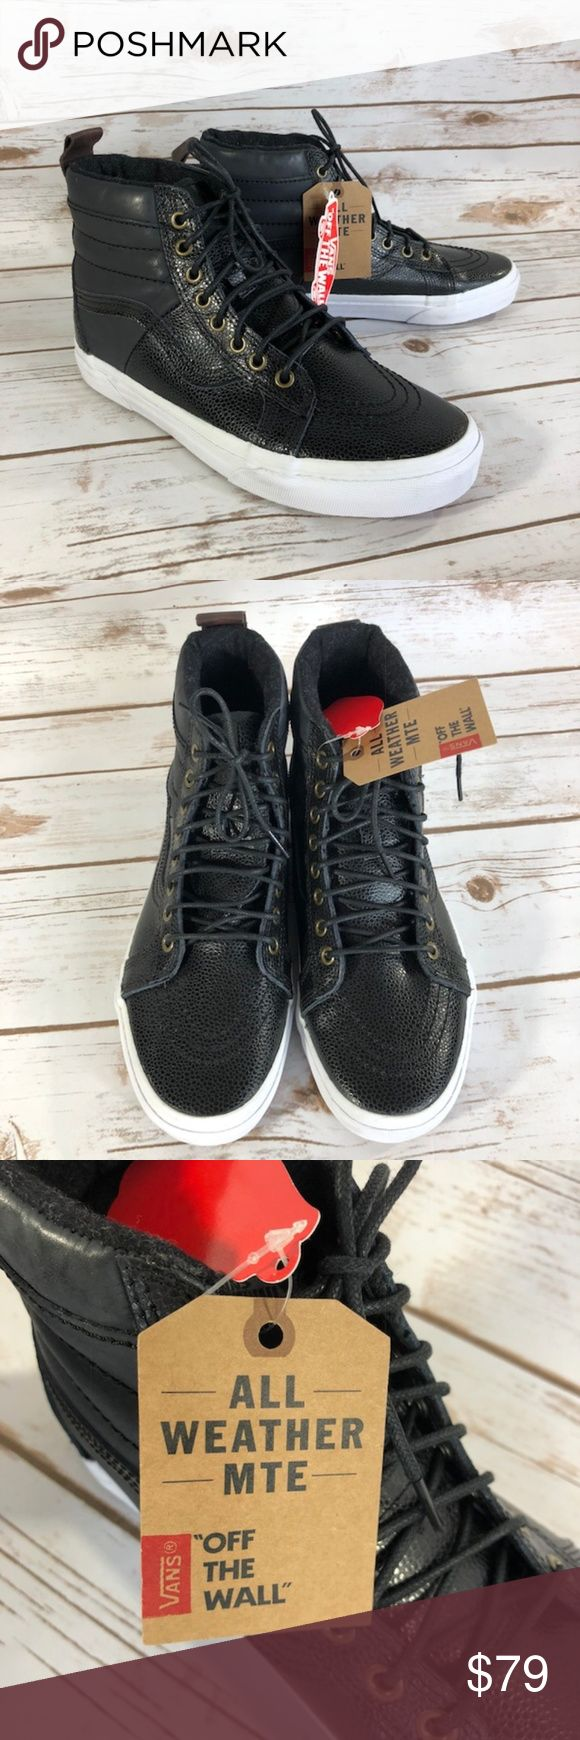 """Vans SK-8 Hi All Weather MTE Pebble Grain NEW New with Tags attached but No Box Some signs of wear on the sole from try on's (pictured) Size 8.5 - Out Sole=10.5""""; High Top to Sole=5.5"""" Size  10 - Out Sole=11""""; High Top to Sole=5.5"""" Scotchgard treated leather Fleece lining Vans Shoes Sneakers"""